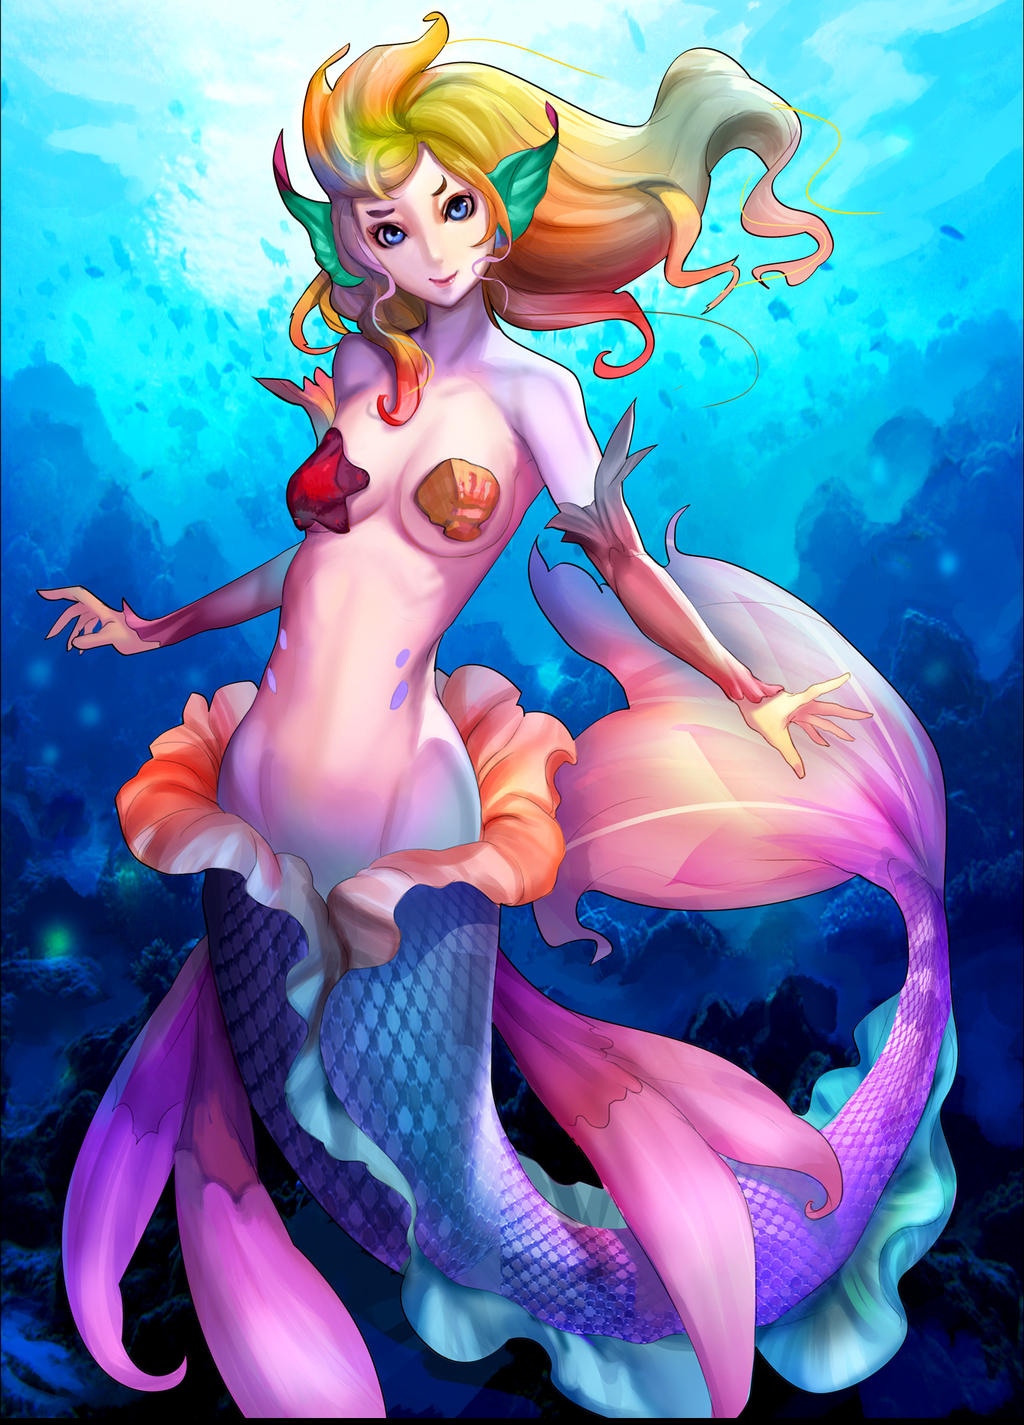 Mermaid by Readman